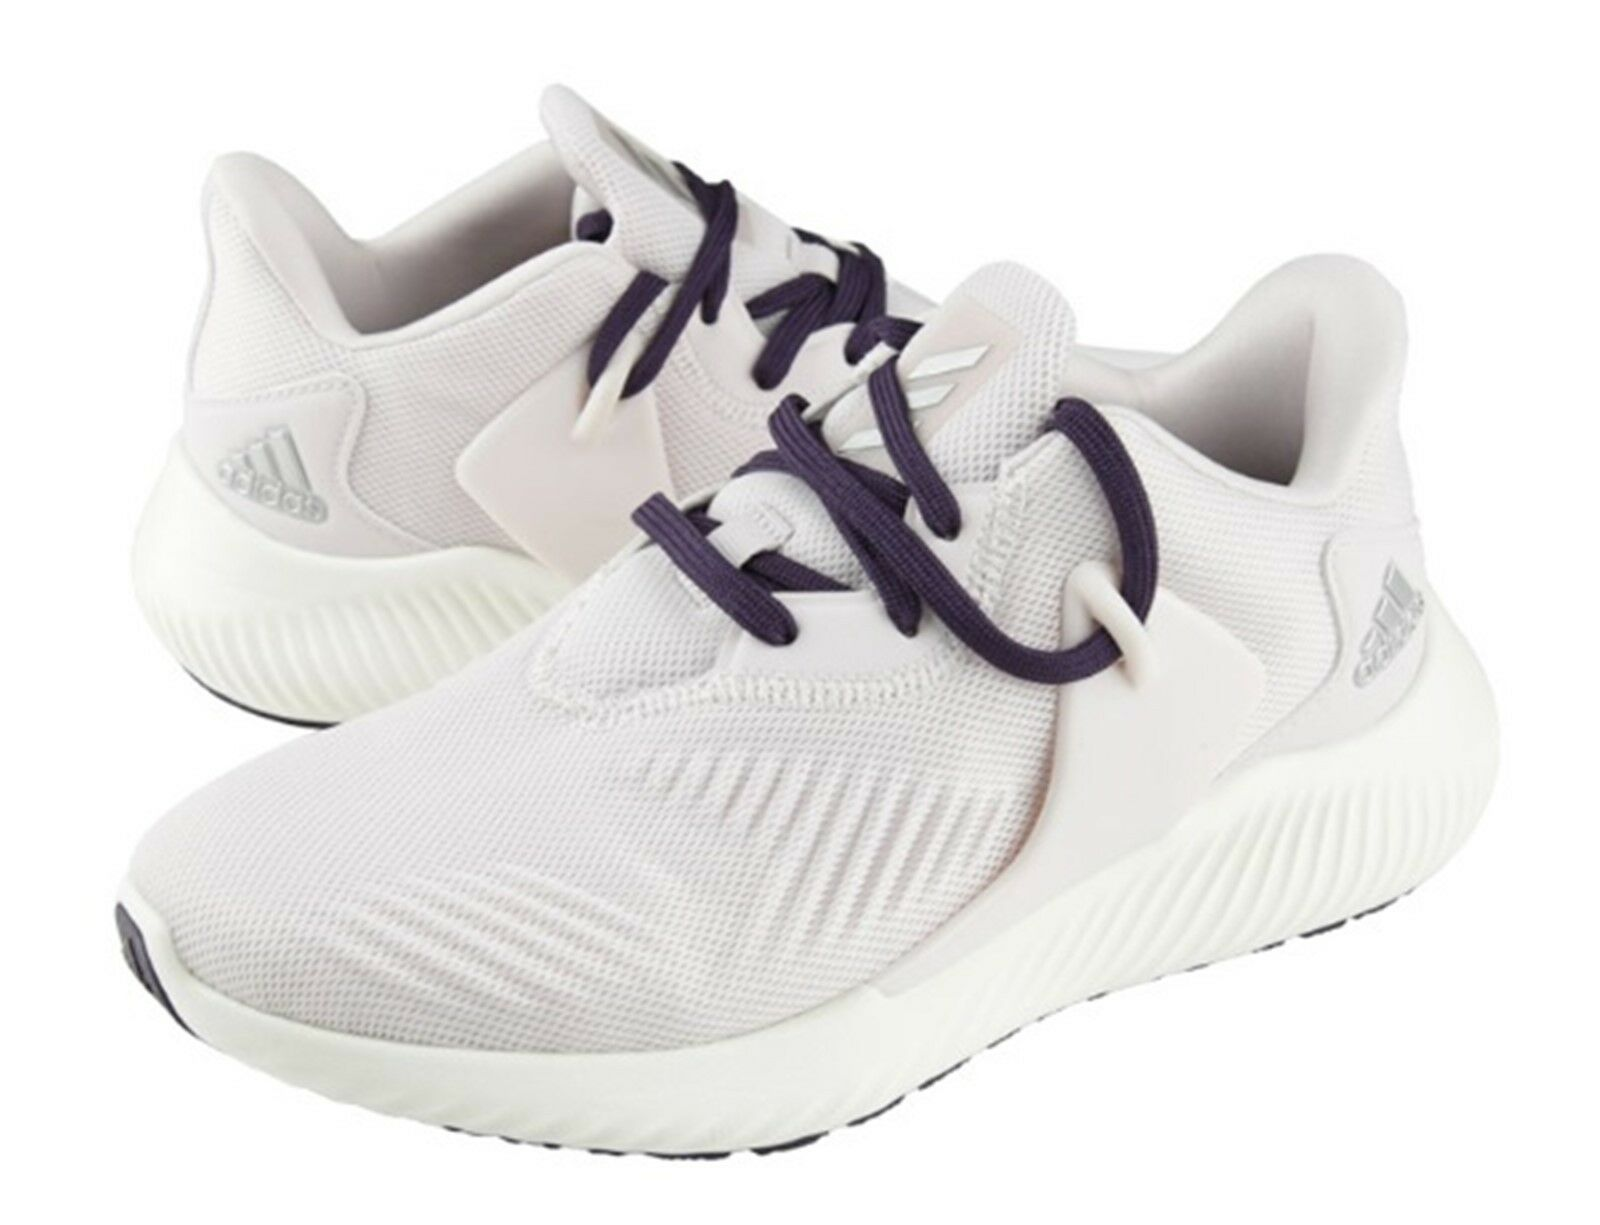 9fce3ad4fac1a Adidas Women Alpha-bounce RC 2 shoes Running White Casual Sneakers shoes  F36766 nivpxl10048-Women